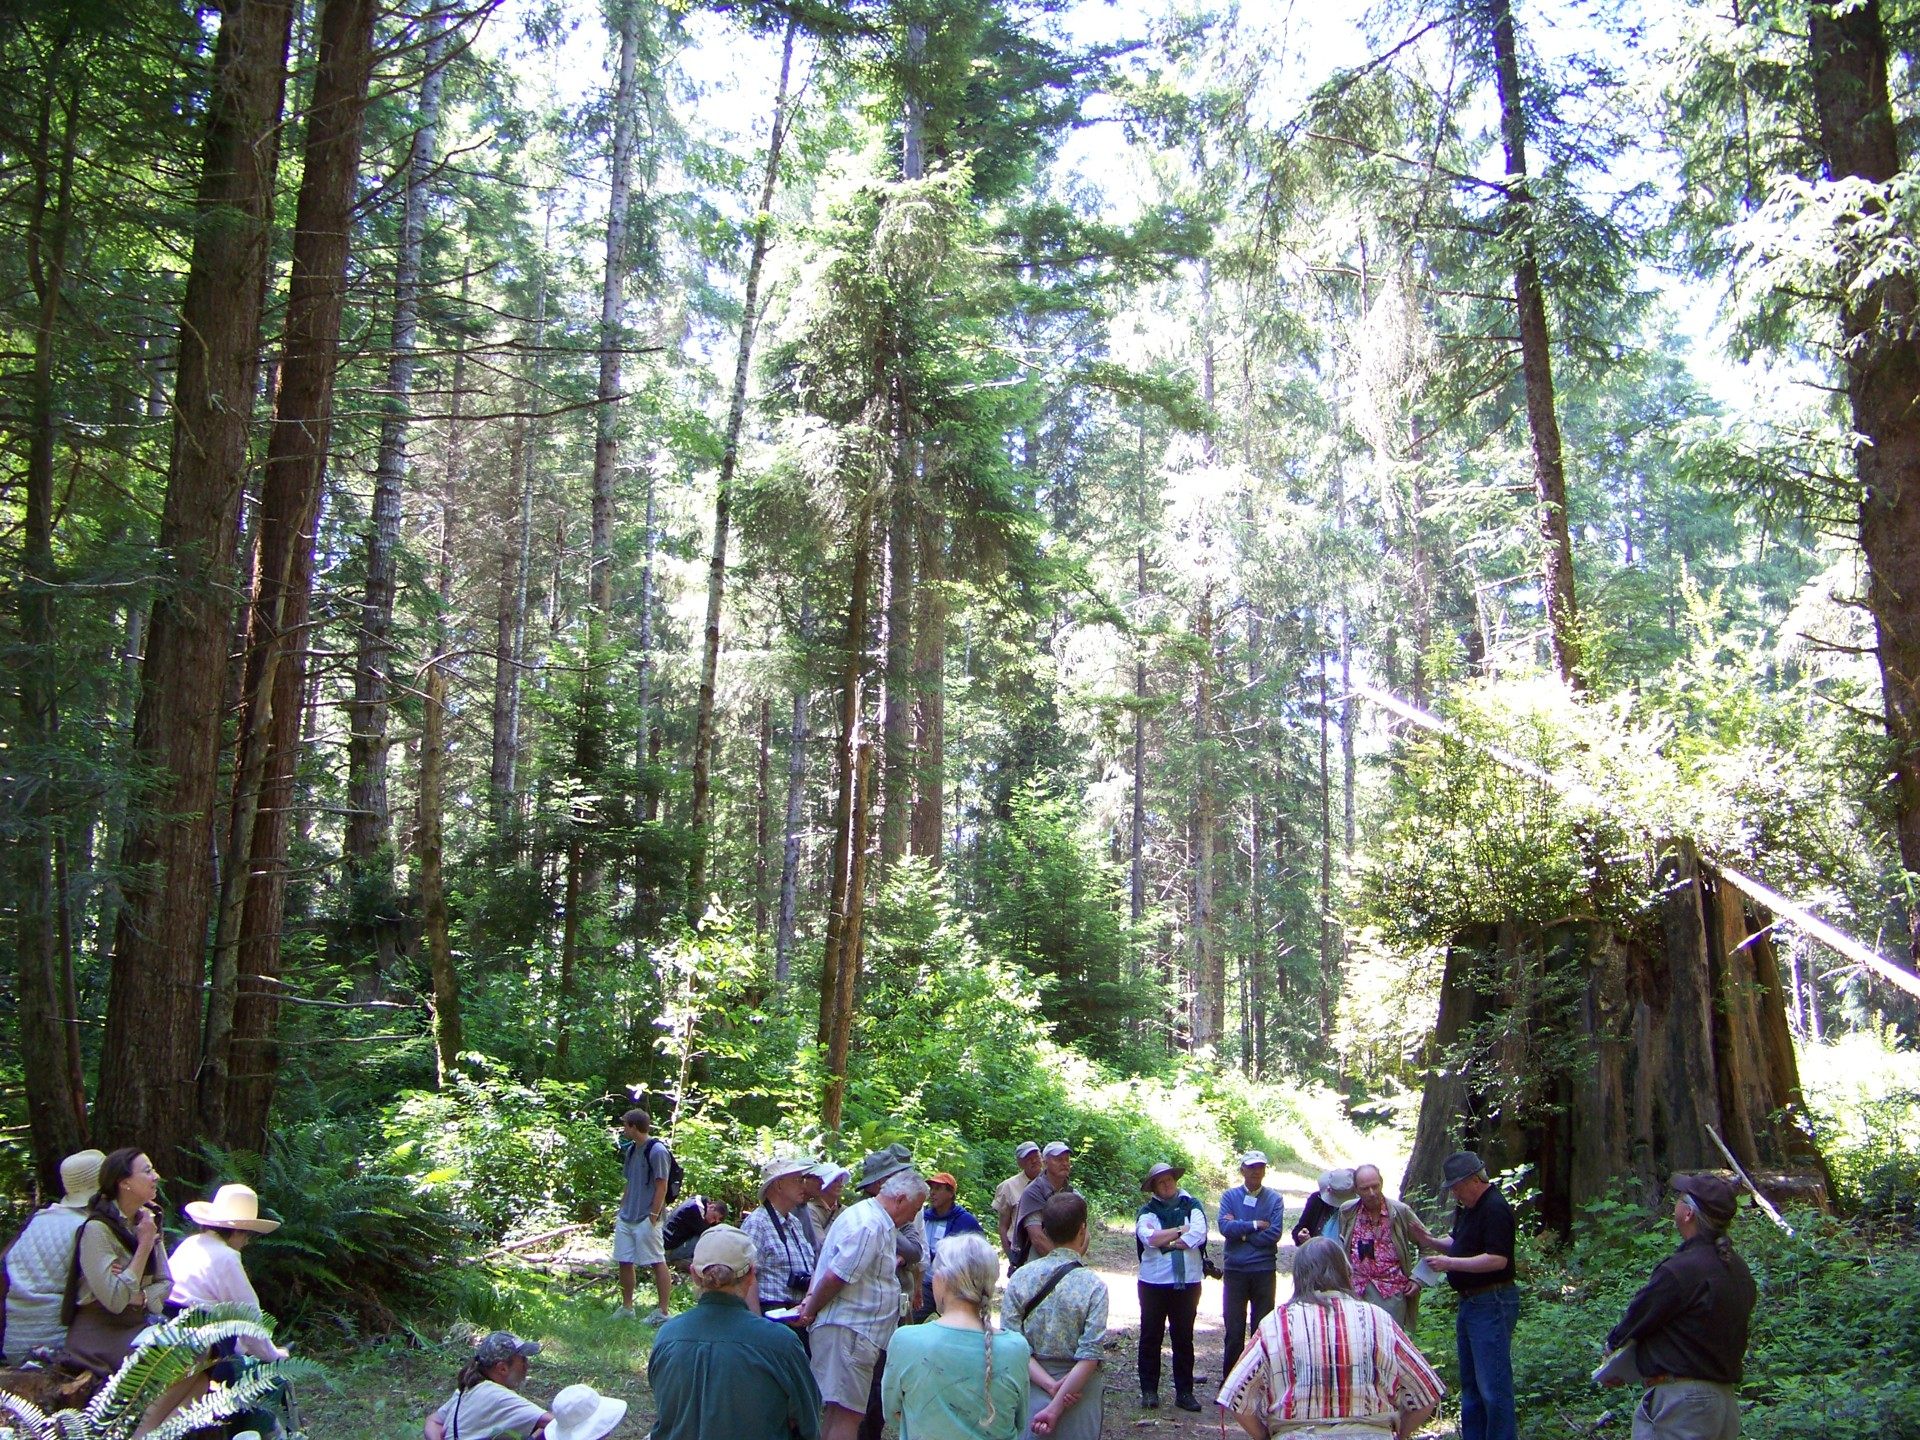 Eureka forester Jim Able holds court in the Van Eck Forest with members of the International Dendrology Society, who came from England, Belgium, France, The Netherlands, New Zealand, Germany, Singapore, Argentina, Australia and the U.S.A. - PHOTO BY HEIDI WALTERS